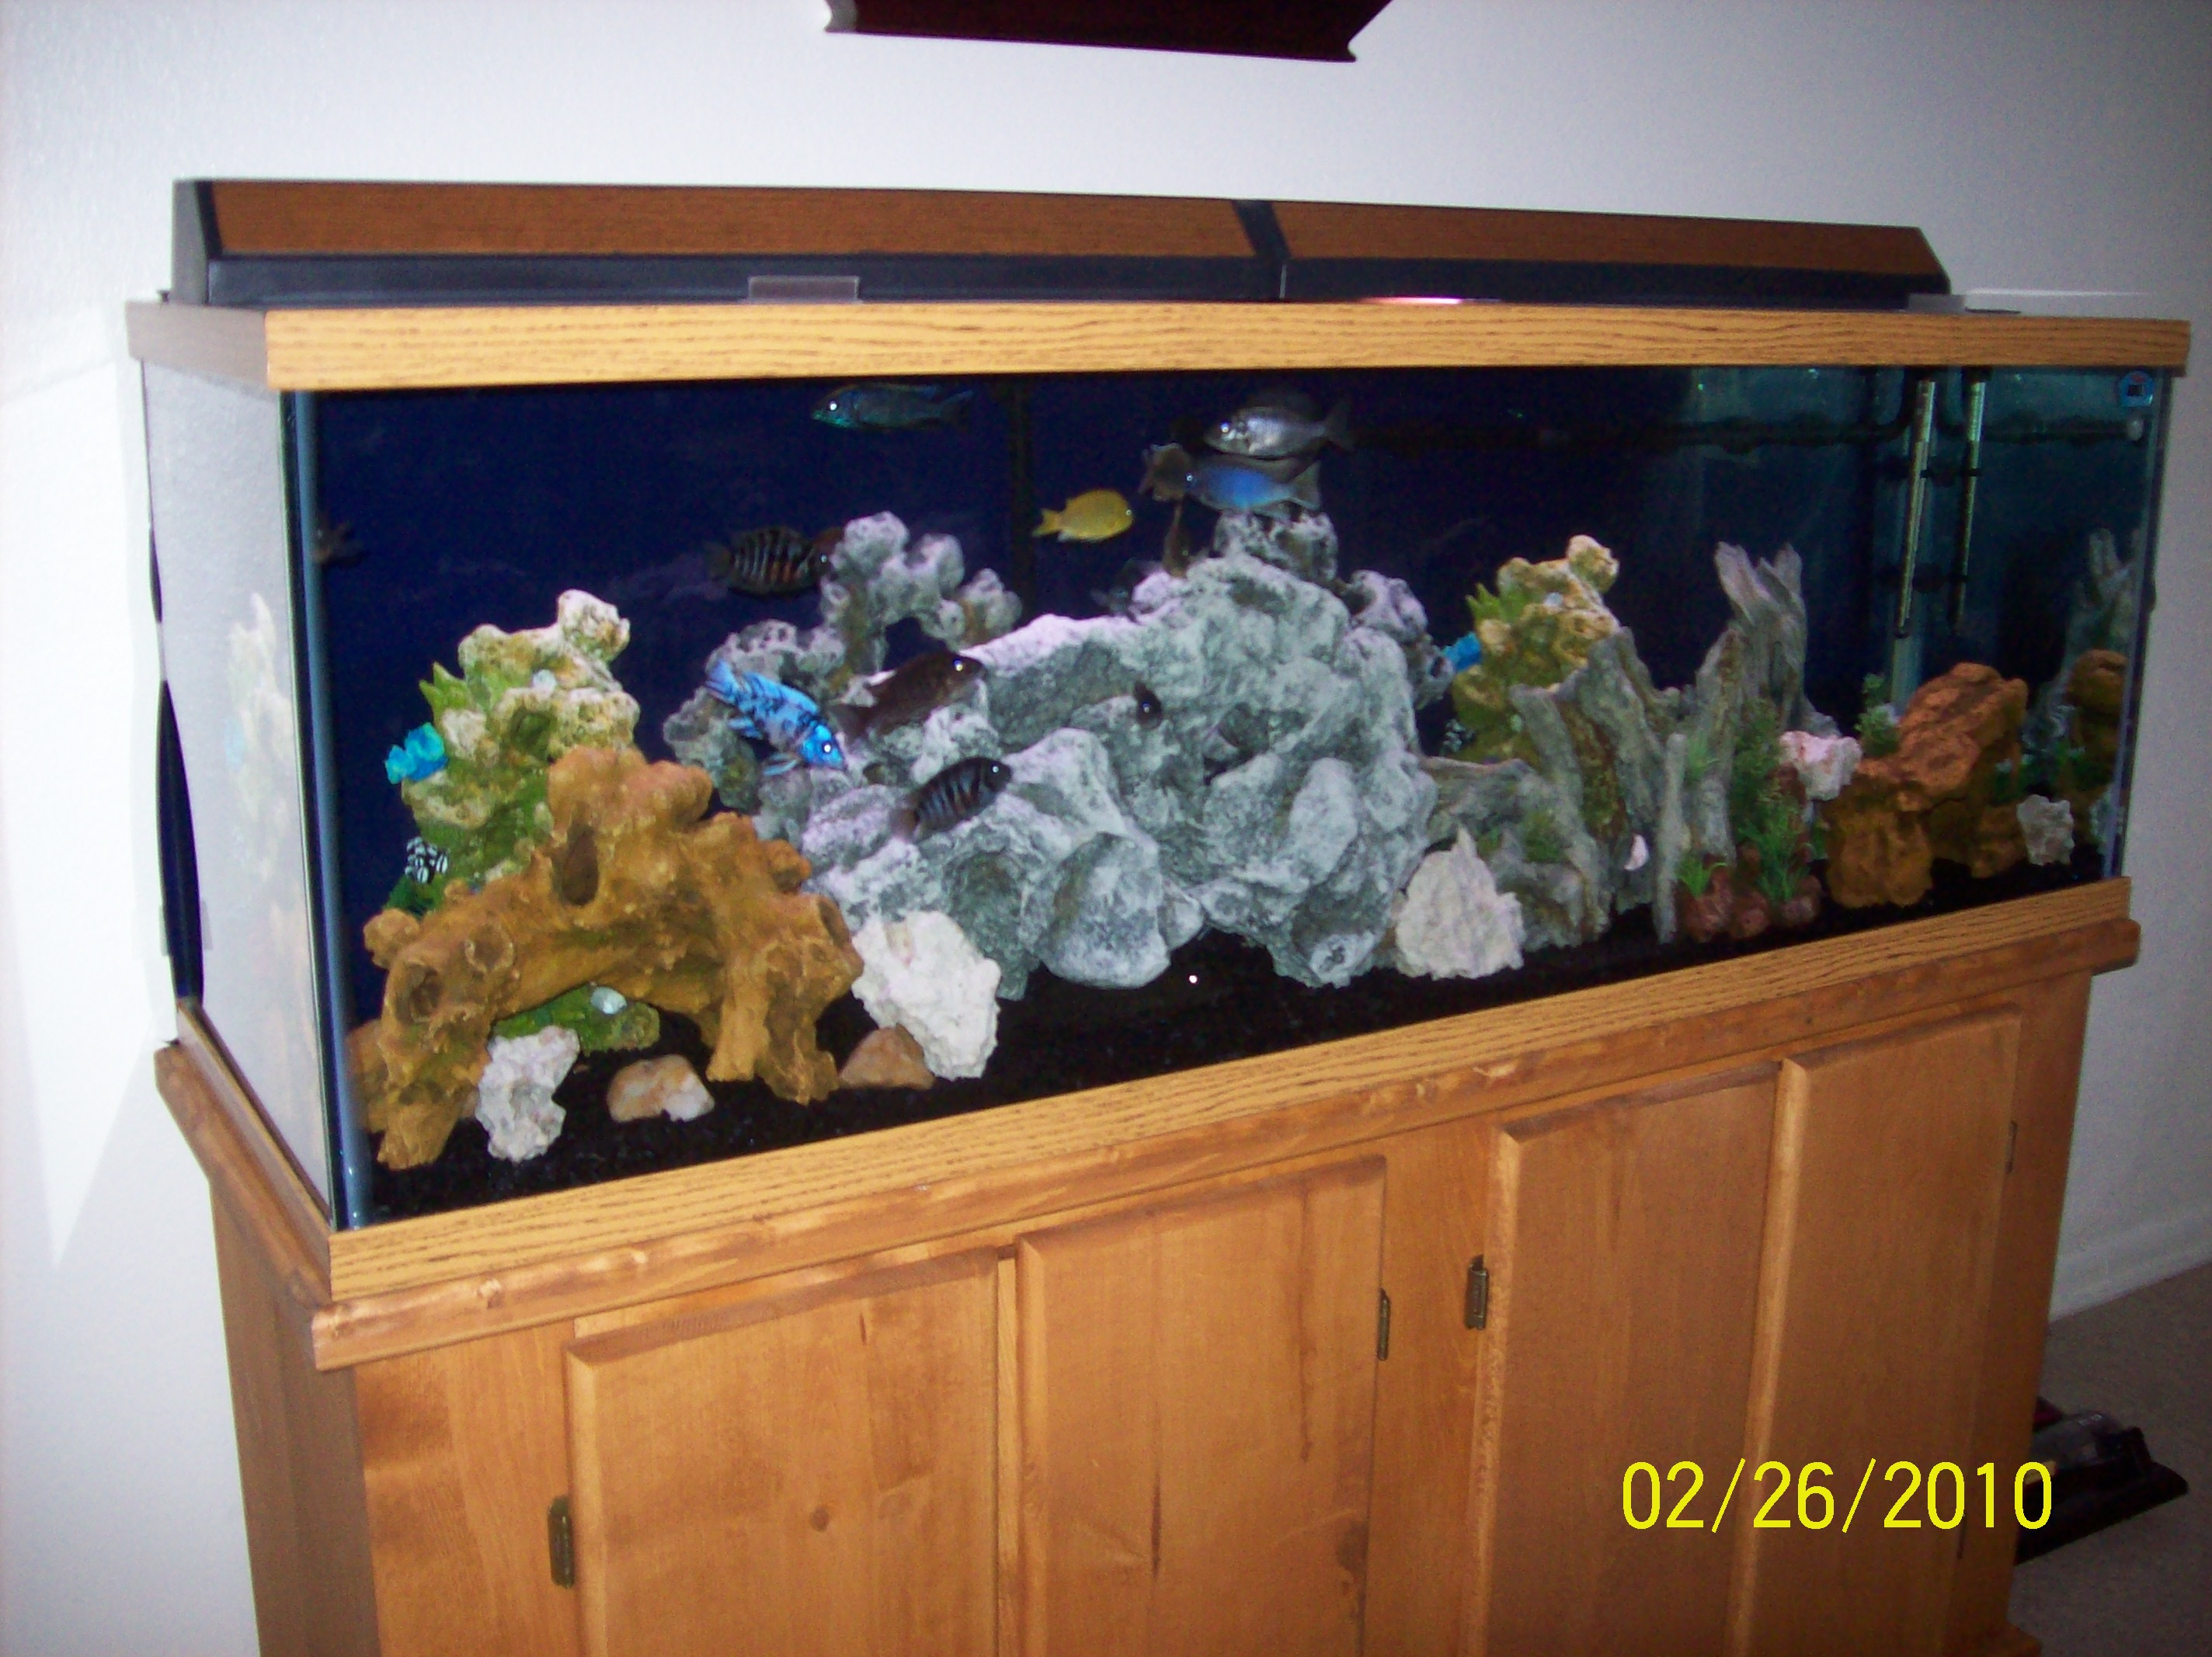 100 gallon fish tank images galleries for 75 gallon fish tank dimensions